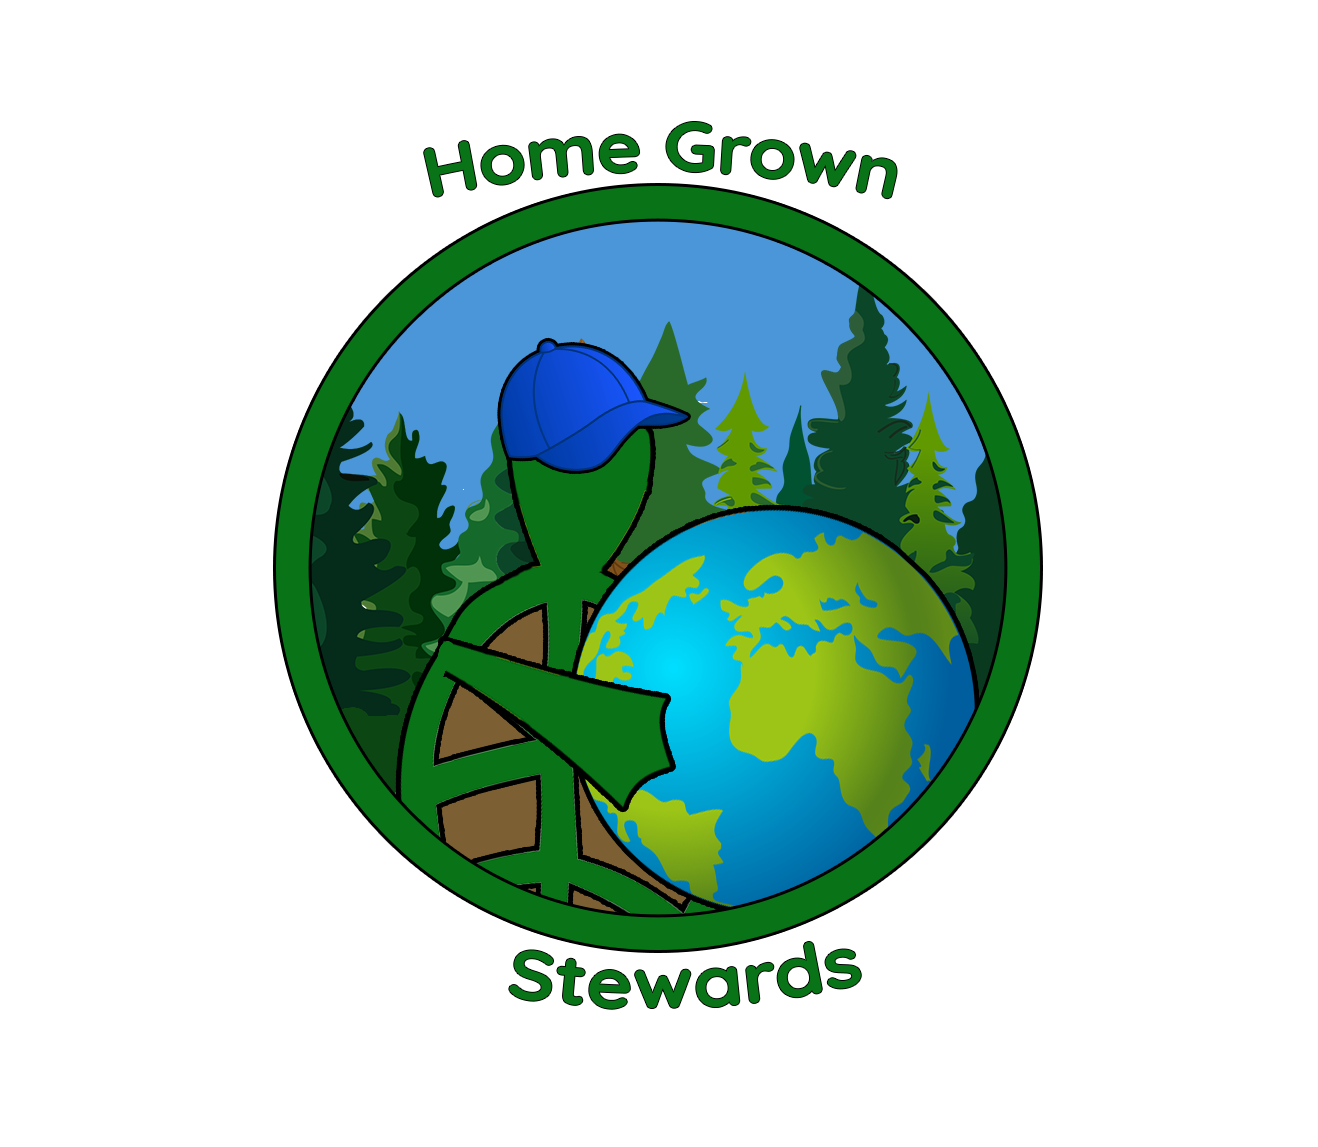 homegrownstewardslogodraft3